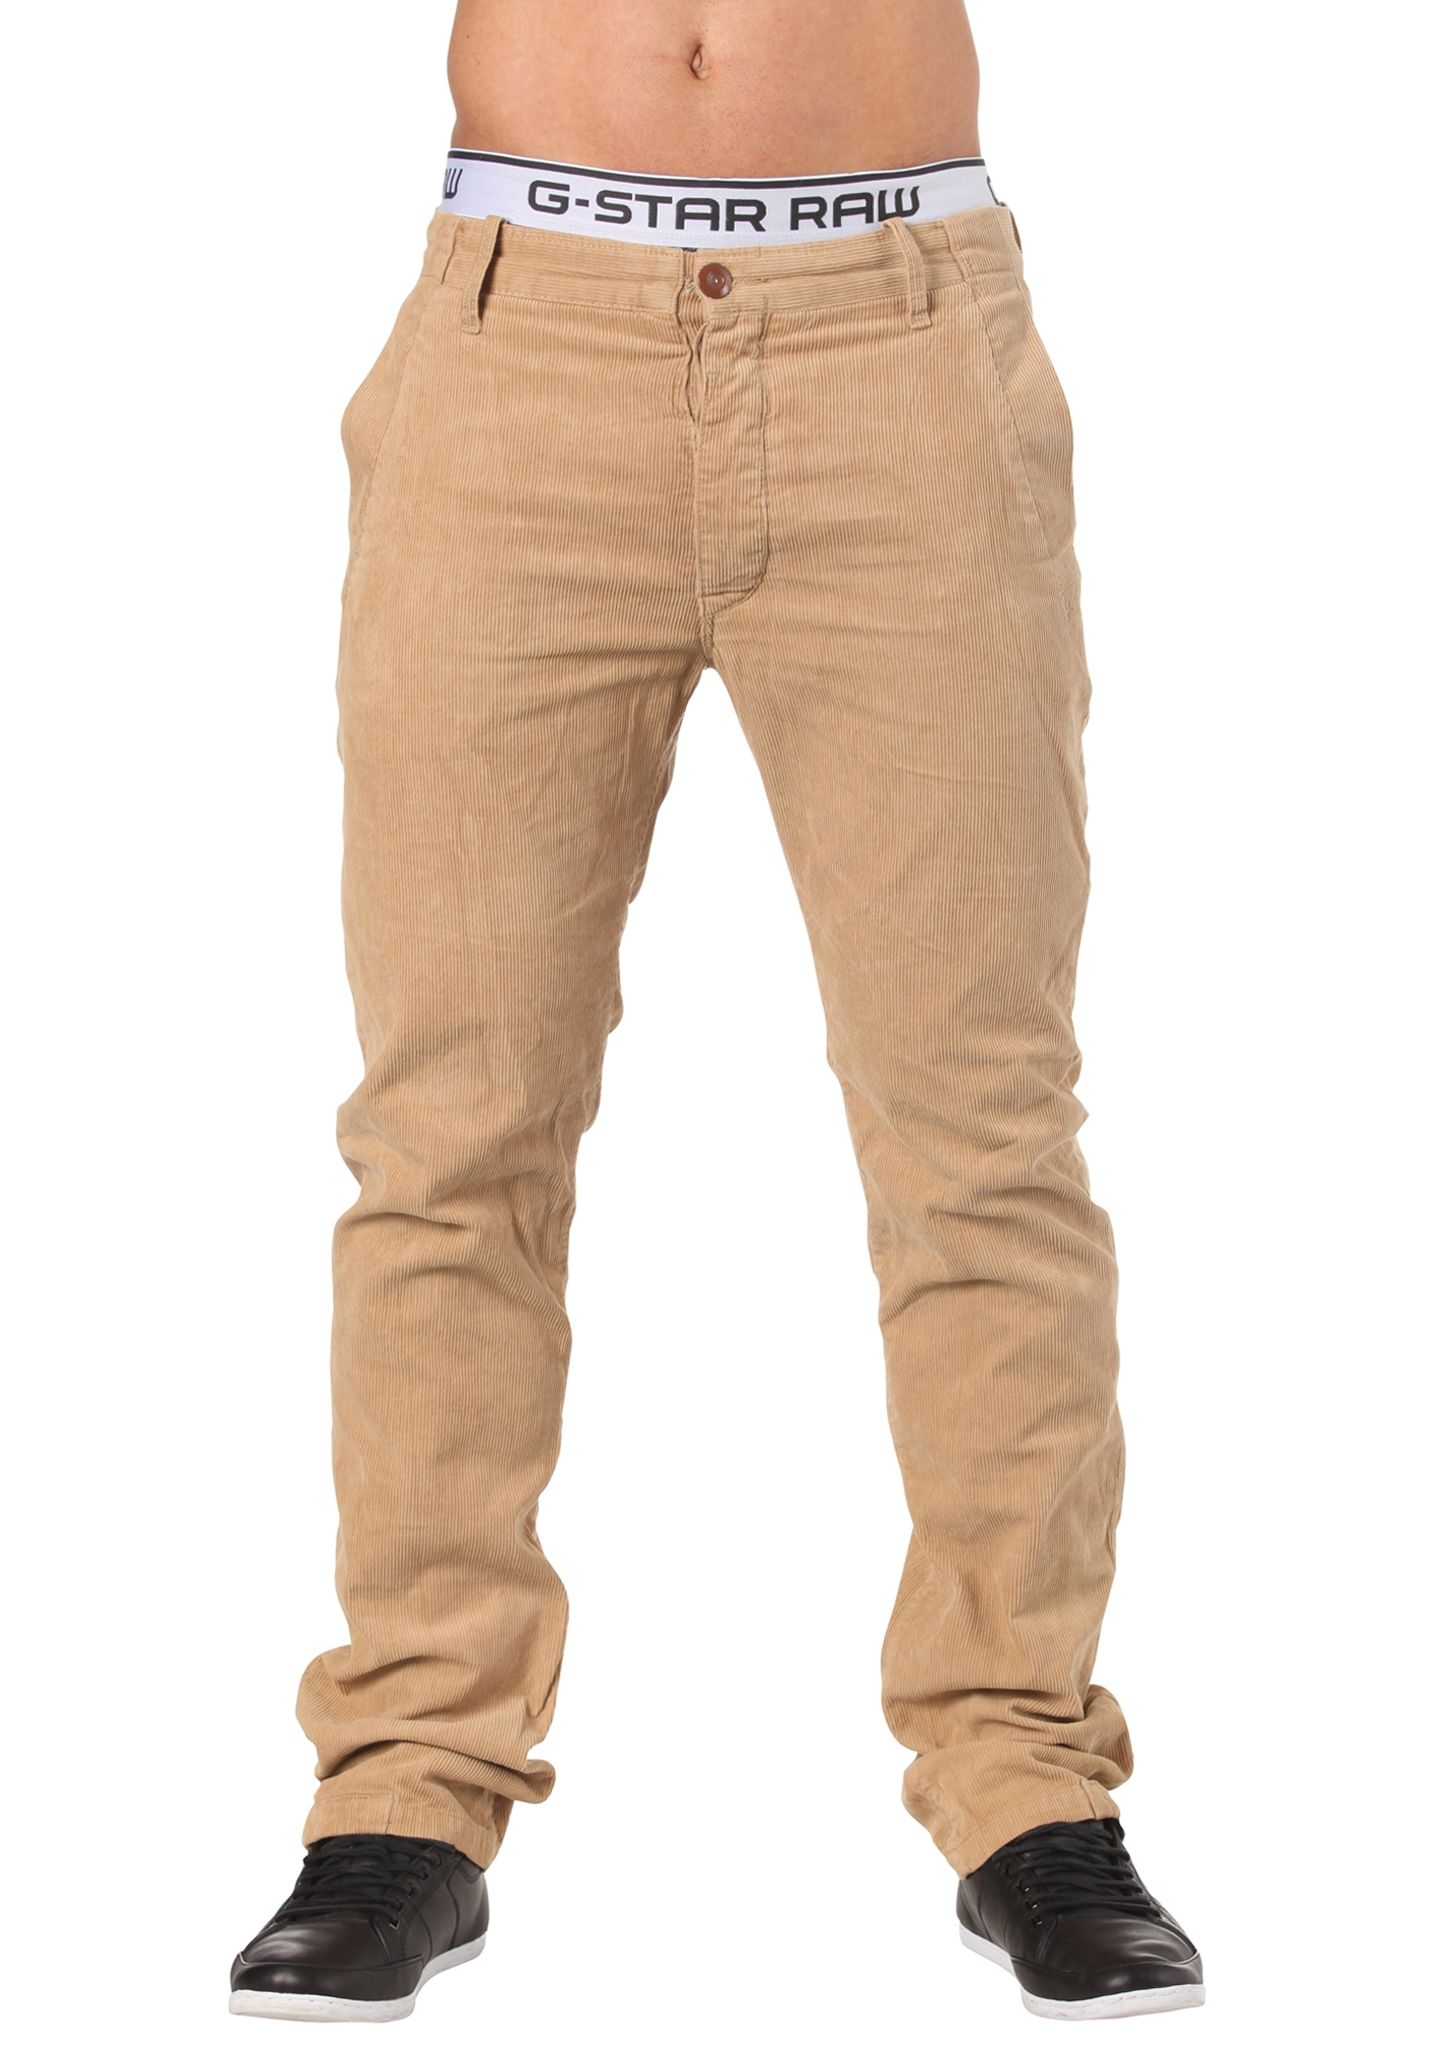 G-STAR CL New Bronson Chino Tapered Pant - Denim Jeans for Men - Khaki Beige  - Planet Sports 5c83756431b6b